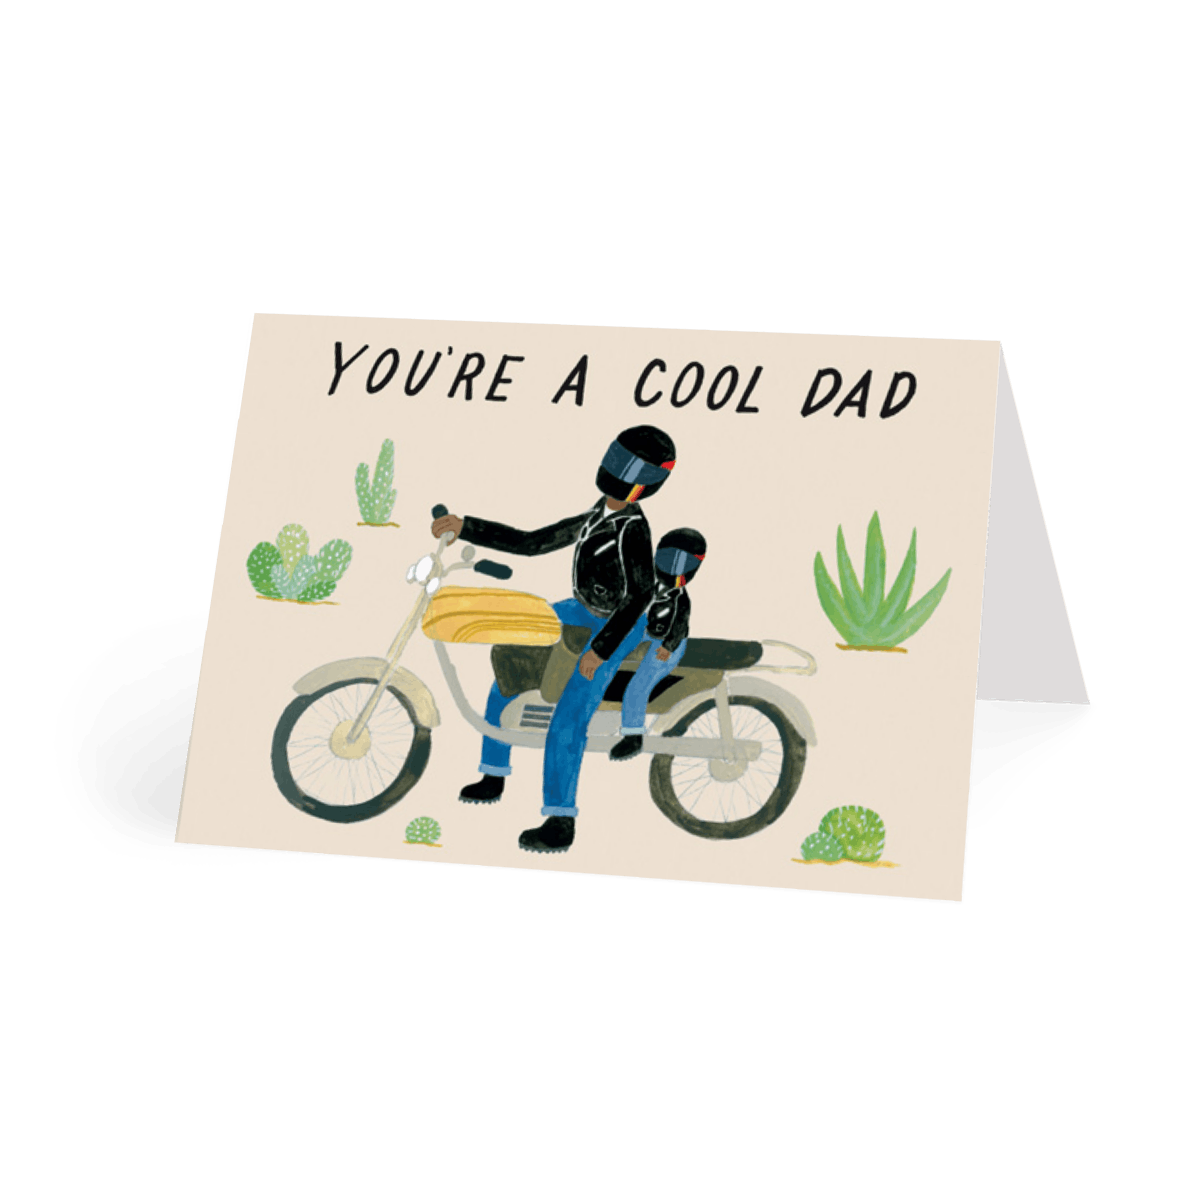 Https%3a%2f%2fwww.papier.com%2fproduct image%2f24444%2f14%2fmotorcycle dad 6117 front 1498217287.png?ixlib=rb 1.1